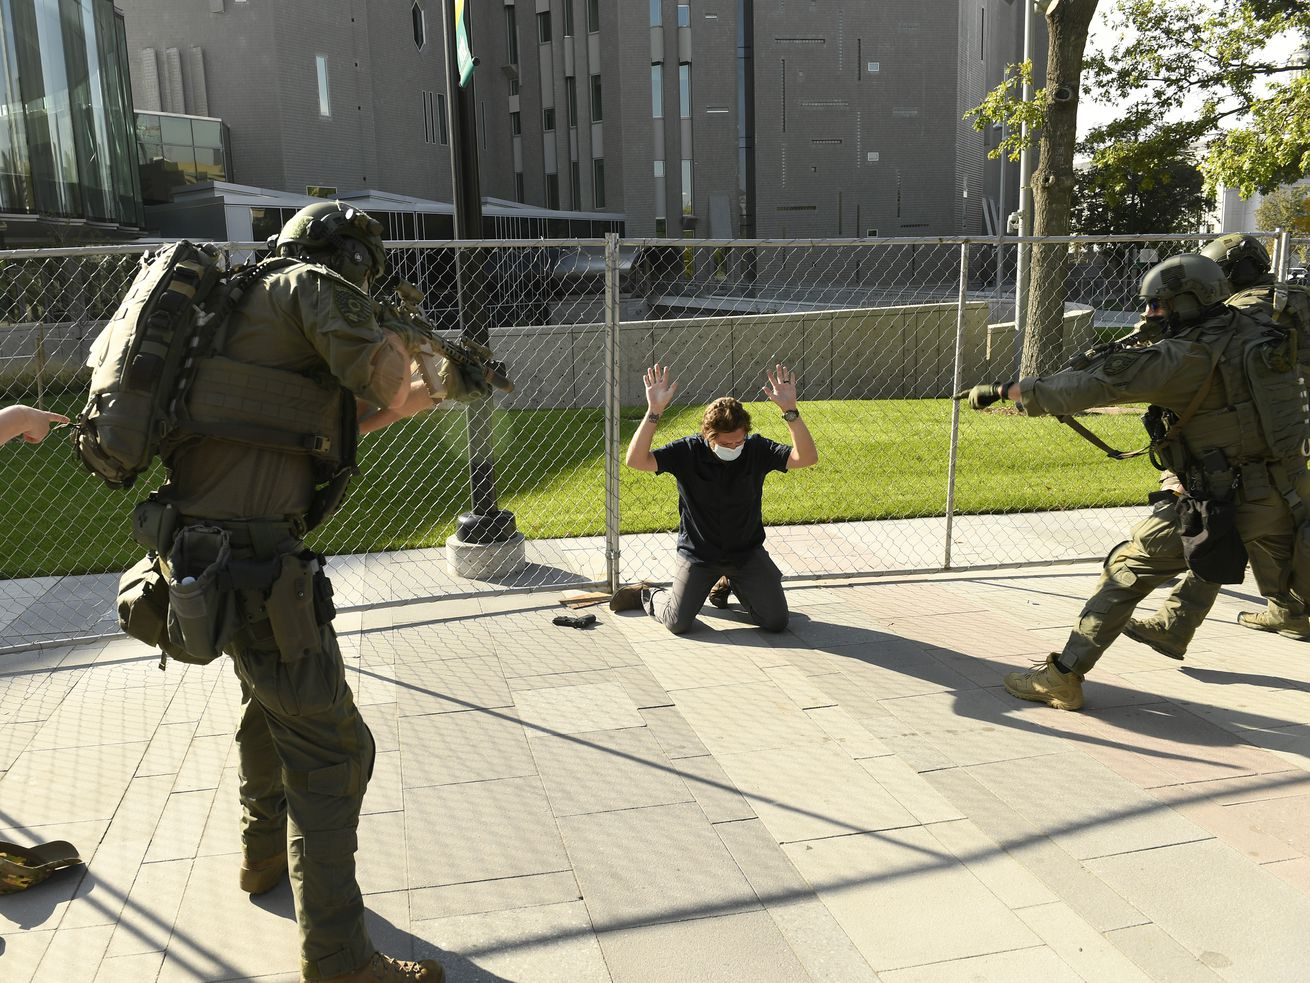 A white man, in a black T-shirt, black jeans, and a white mask, kneels in front of a chain link fence with his hands up. Beside him is a handgun. Three law enforcement officers in military-style body armor, including helmets, surround him, their assault rifles pointed at him. A man in the corner of the photo in a black t-shirt points at the suspect.